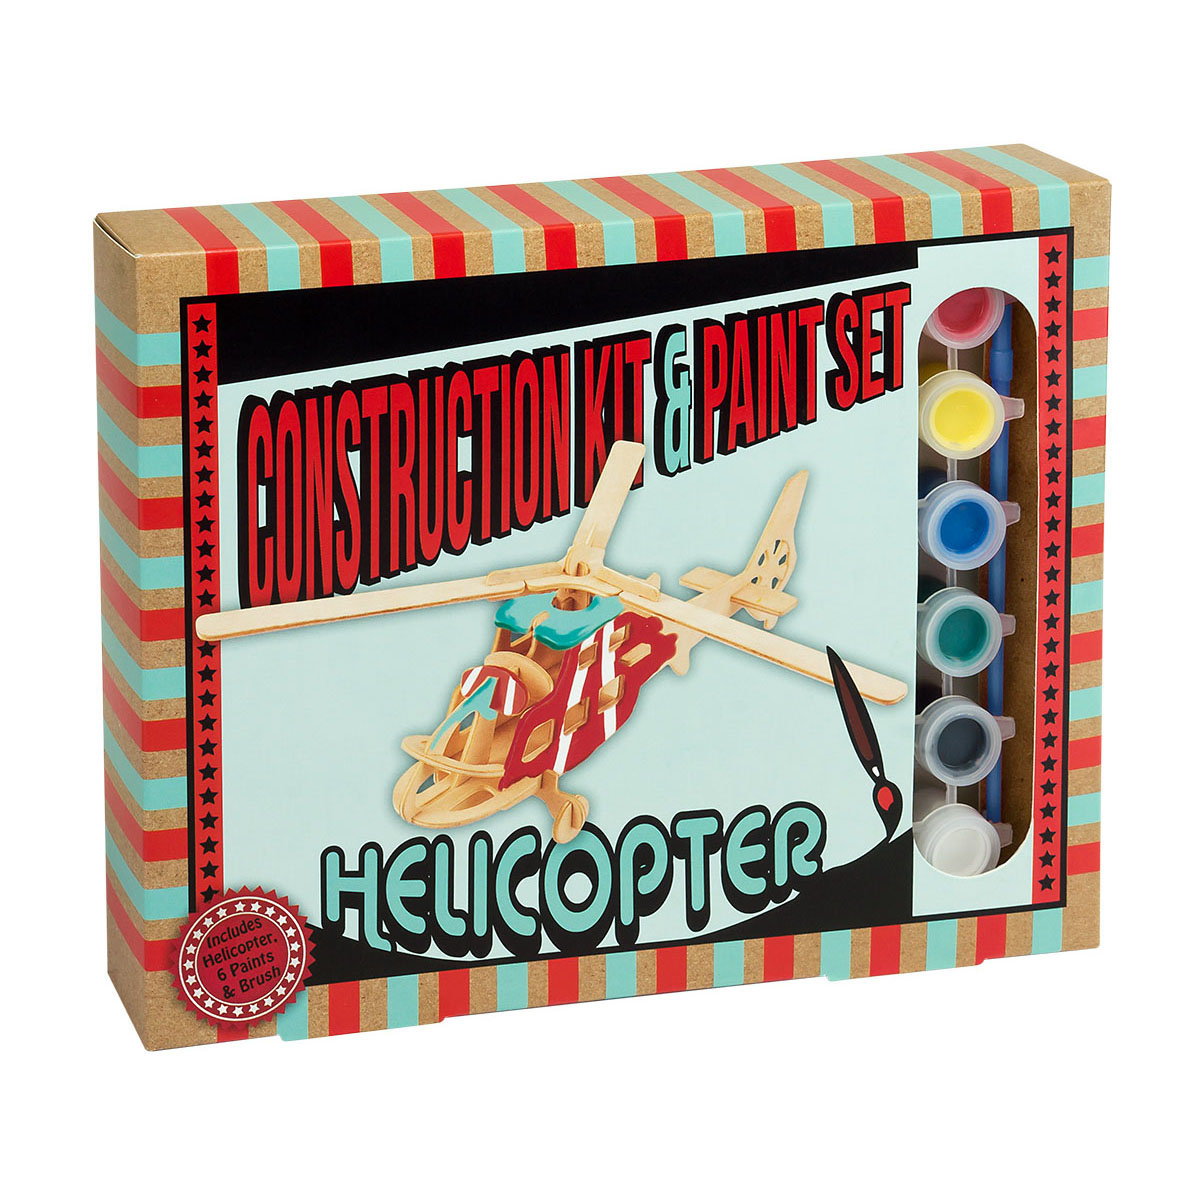 Construction Kit and Paint Sets - Helicopter